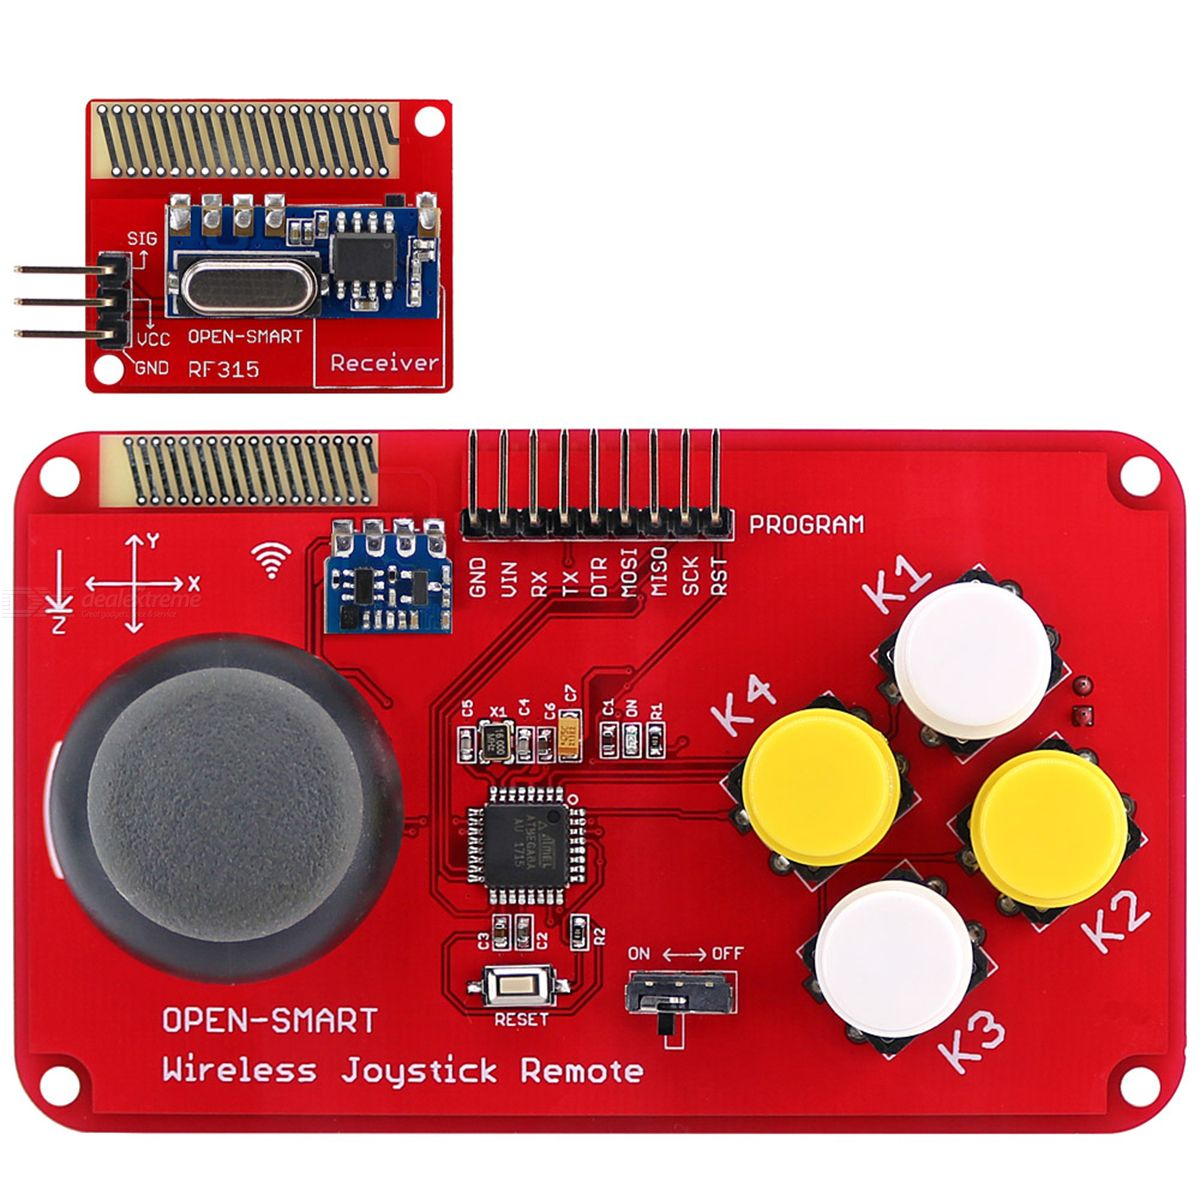 OPEN-SMART PS2 Joystick Keypad RF 315MHz Wireless Joystick Game Controller Module Kit for Smart Car / 4-axis Aircraft